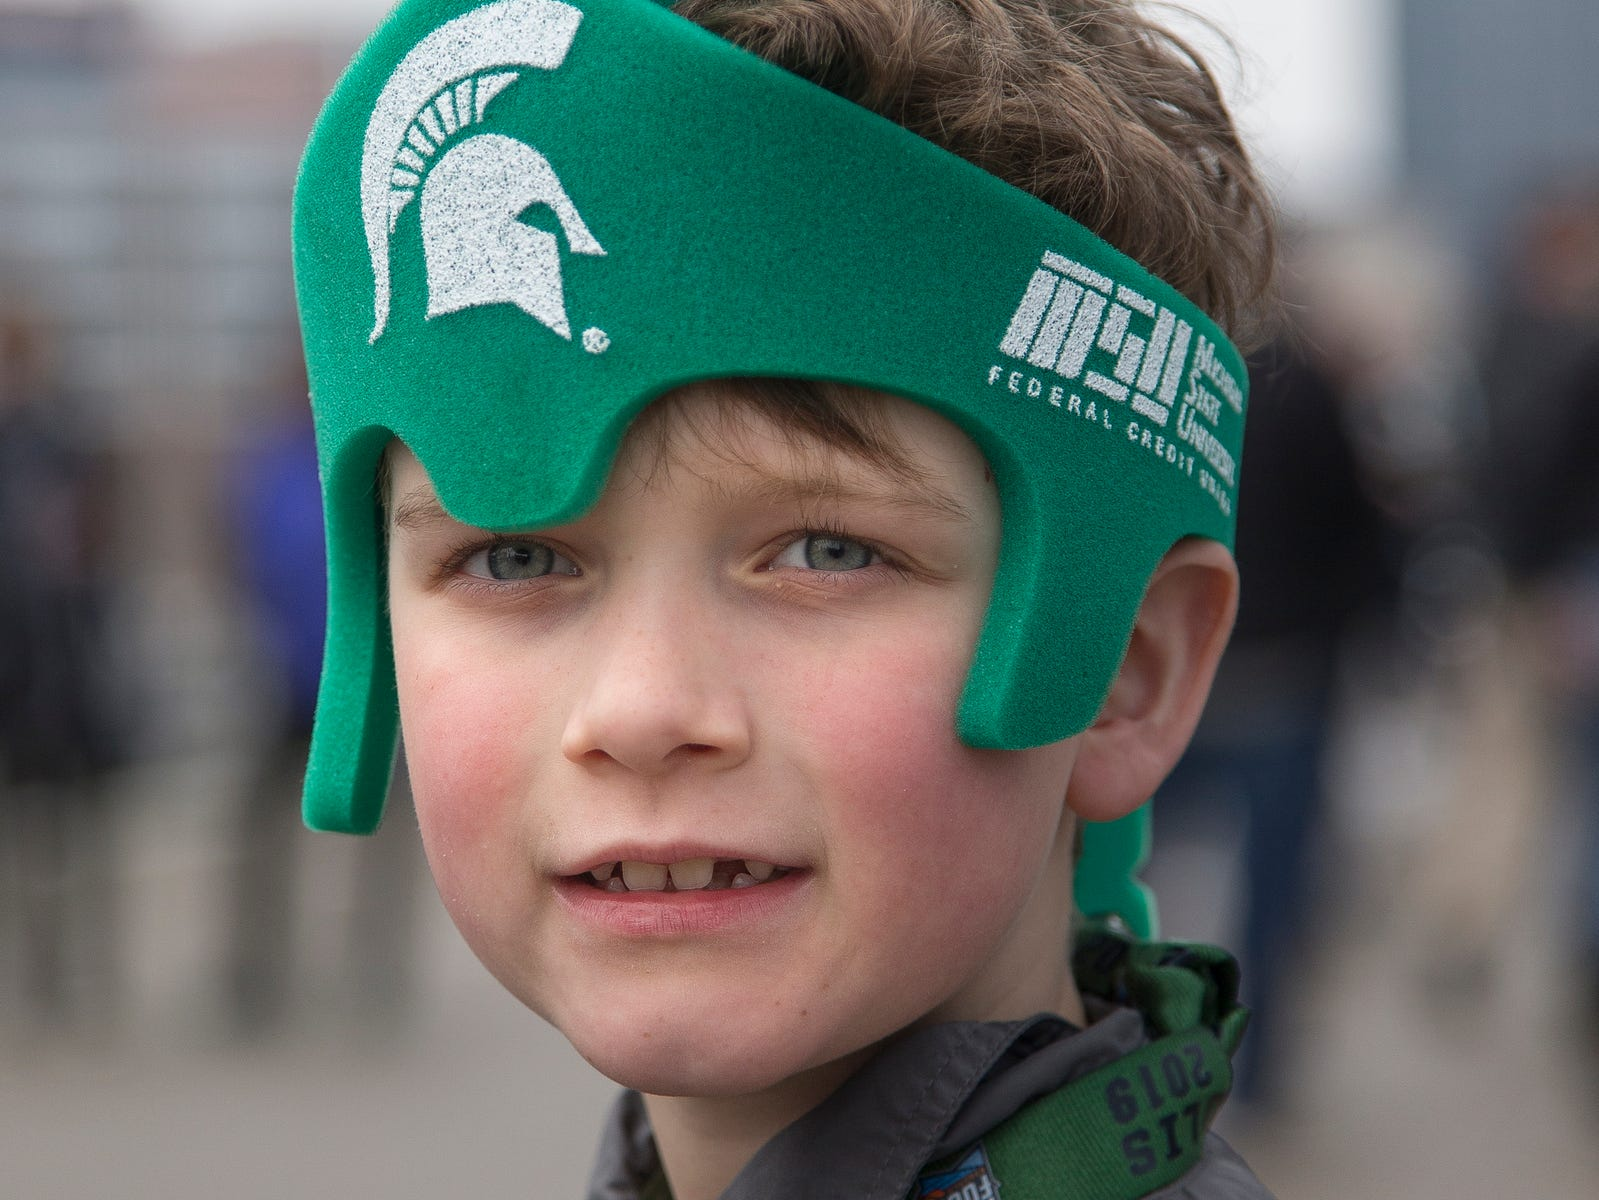 Liam Wellard, 8, of Grand Haven, poses for a photo before the Final Four against Texas Tech at the U.S. Bank Stadium in Minneapolis, Saturday, April 6, 2019. Liam's father Scott Wellard is a Michigan State alumnus.